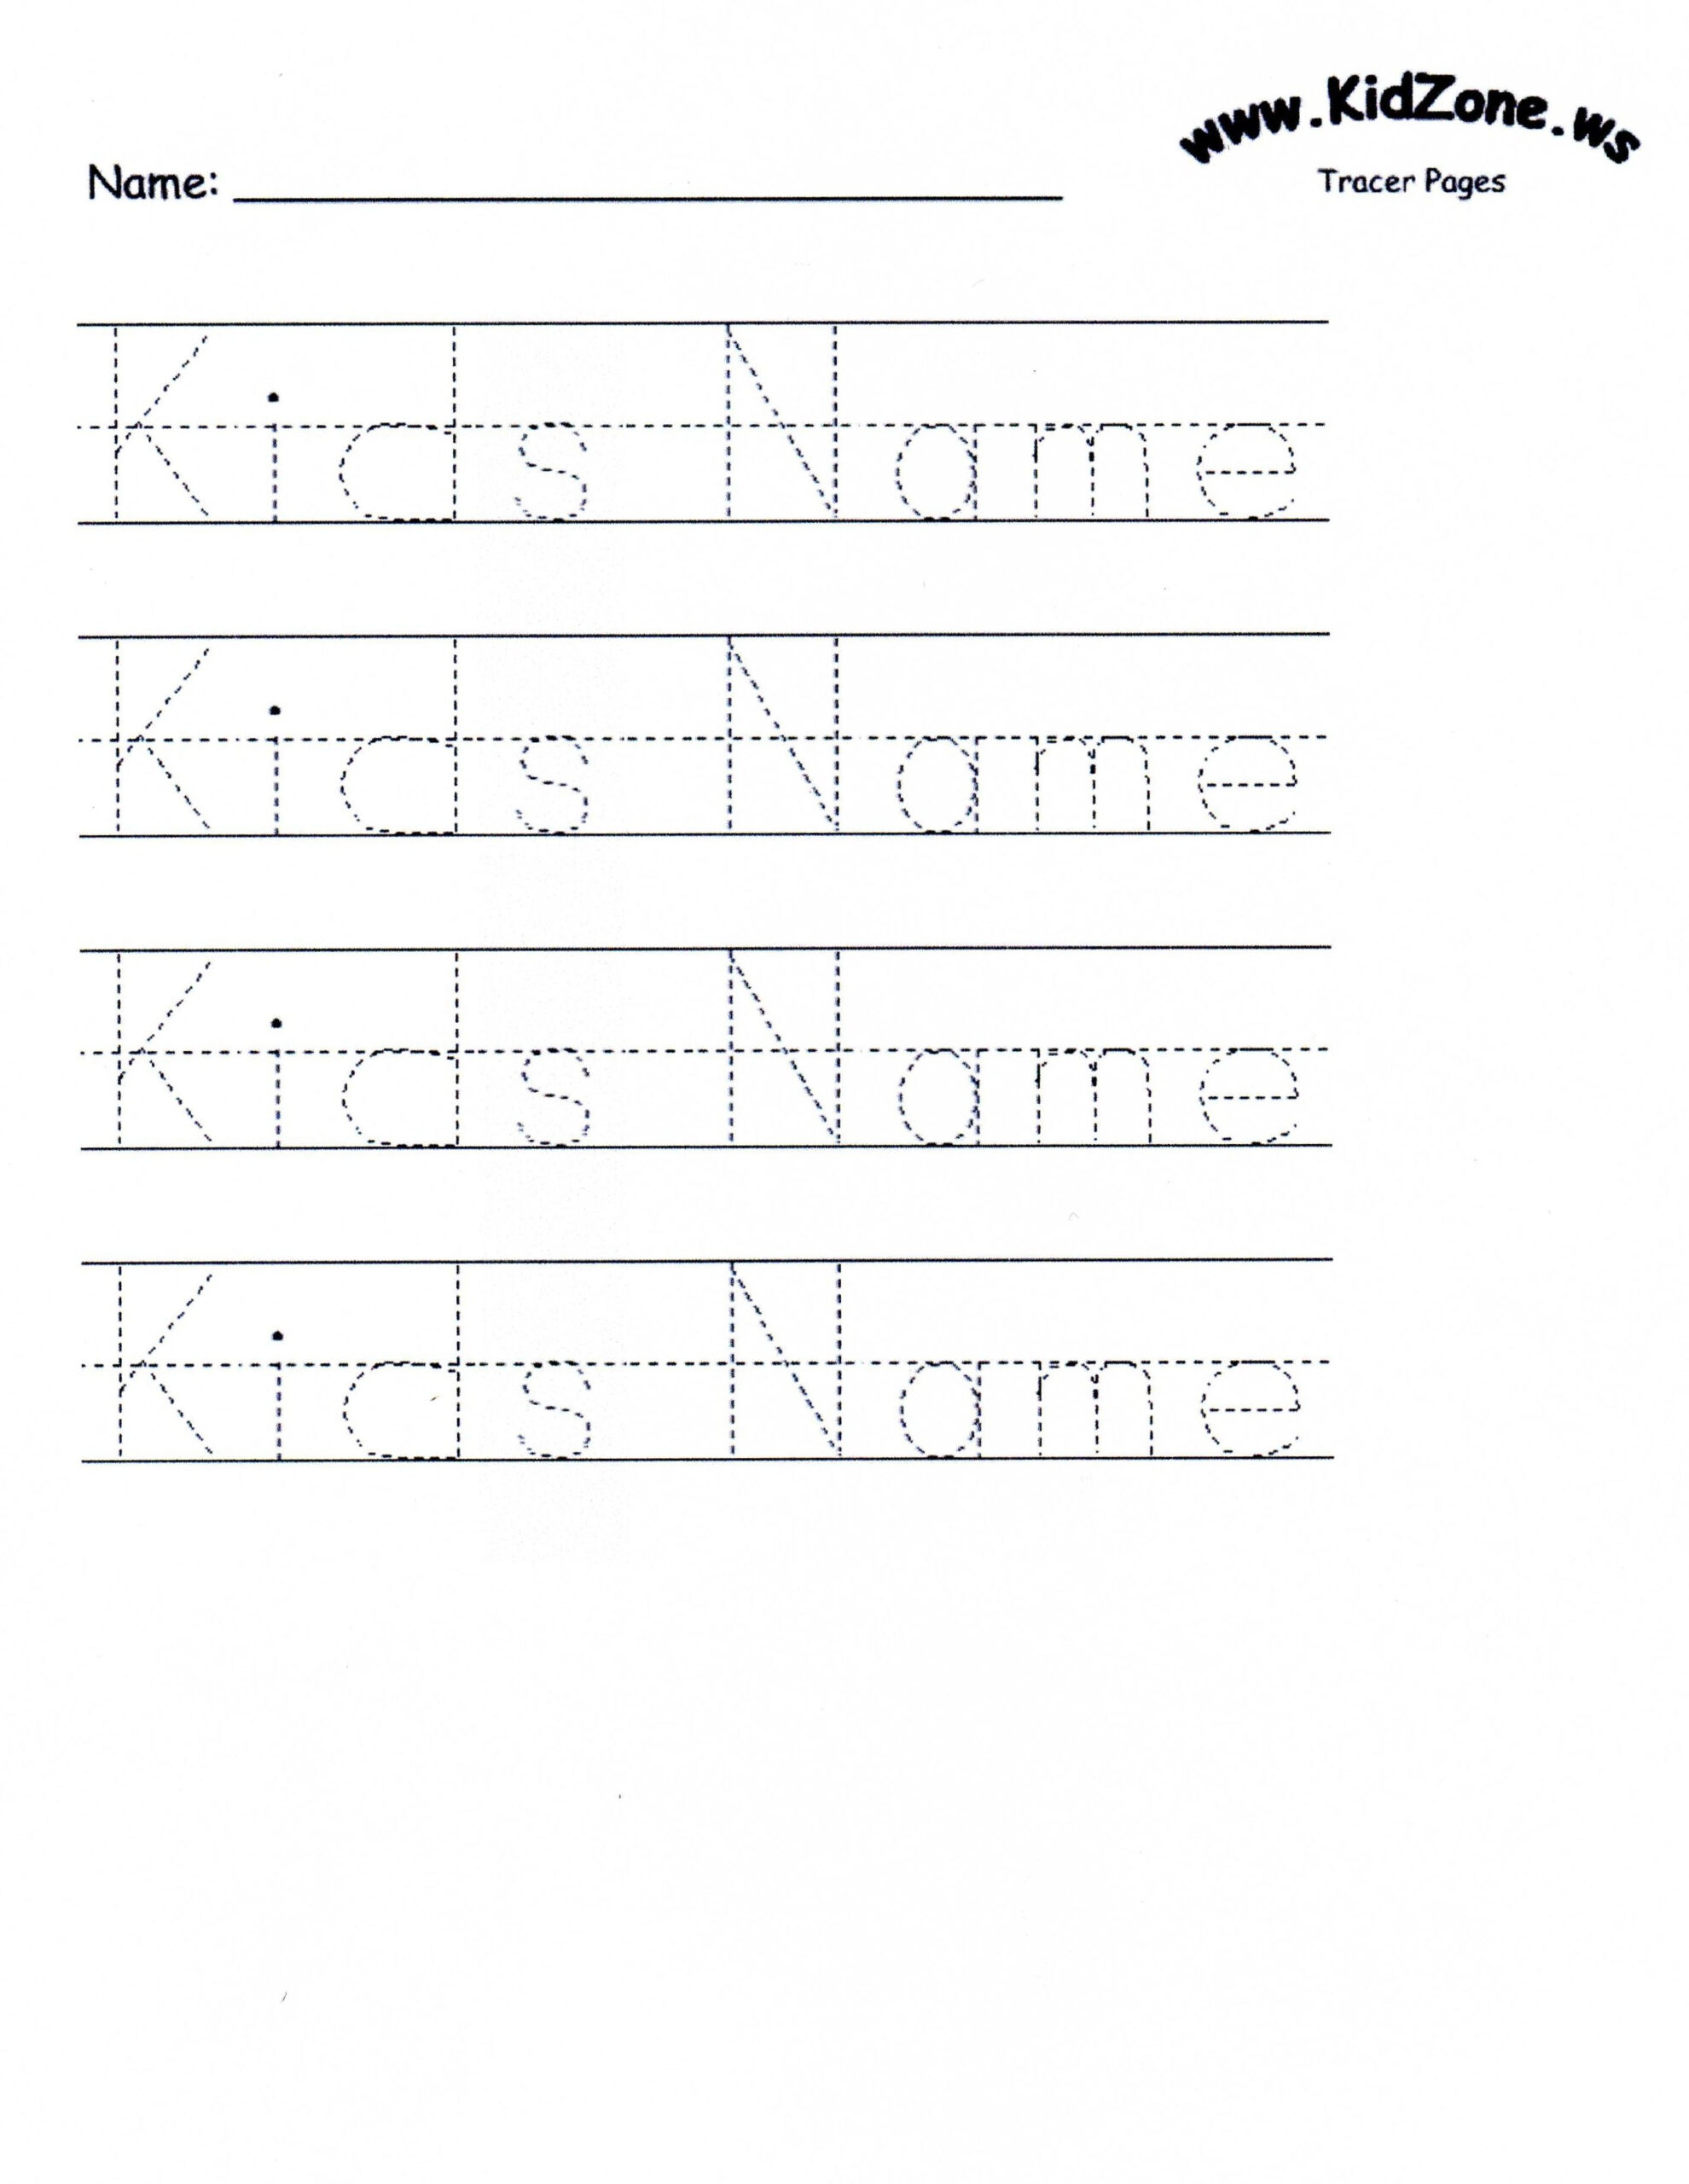 Customizable Printable Letter Pages | Name Tracing intended for Create A Tracing Name